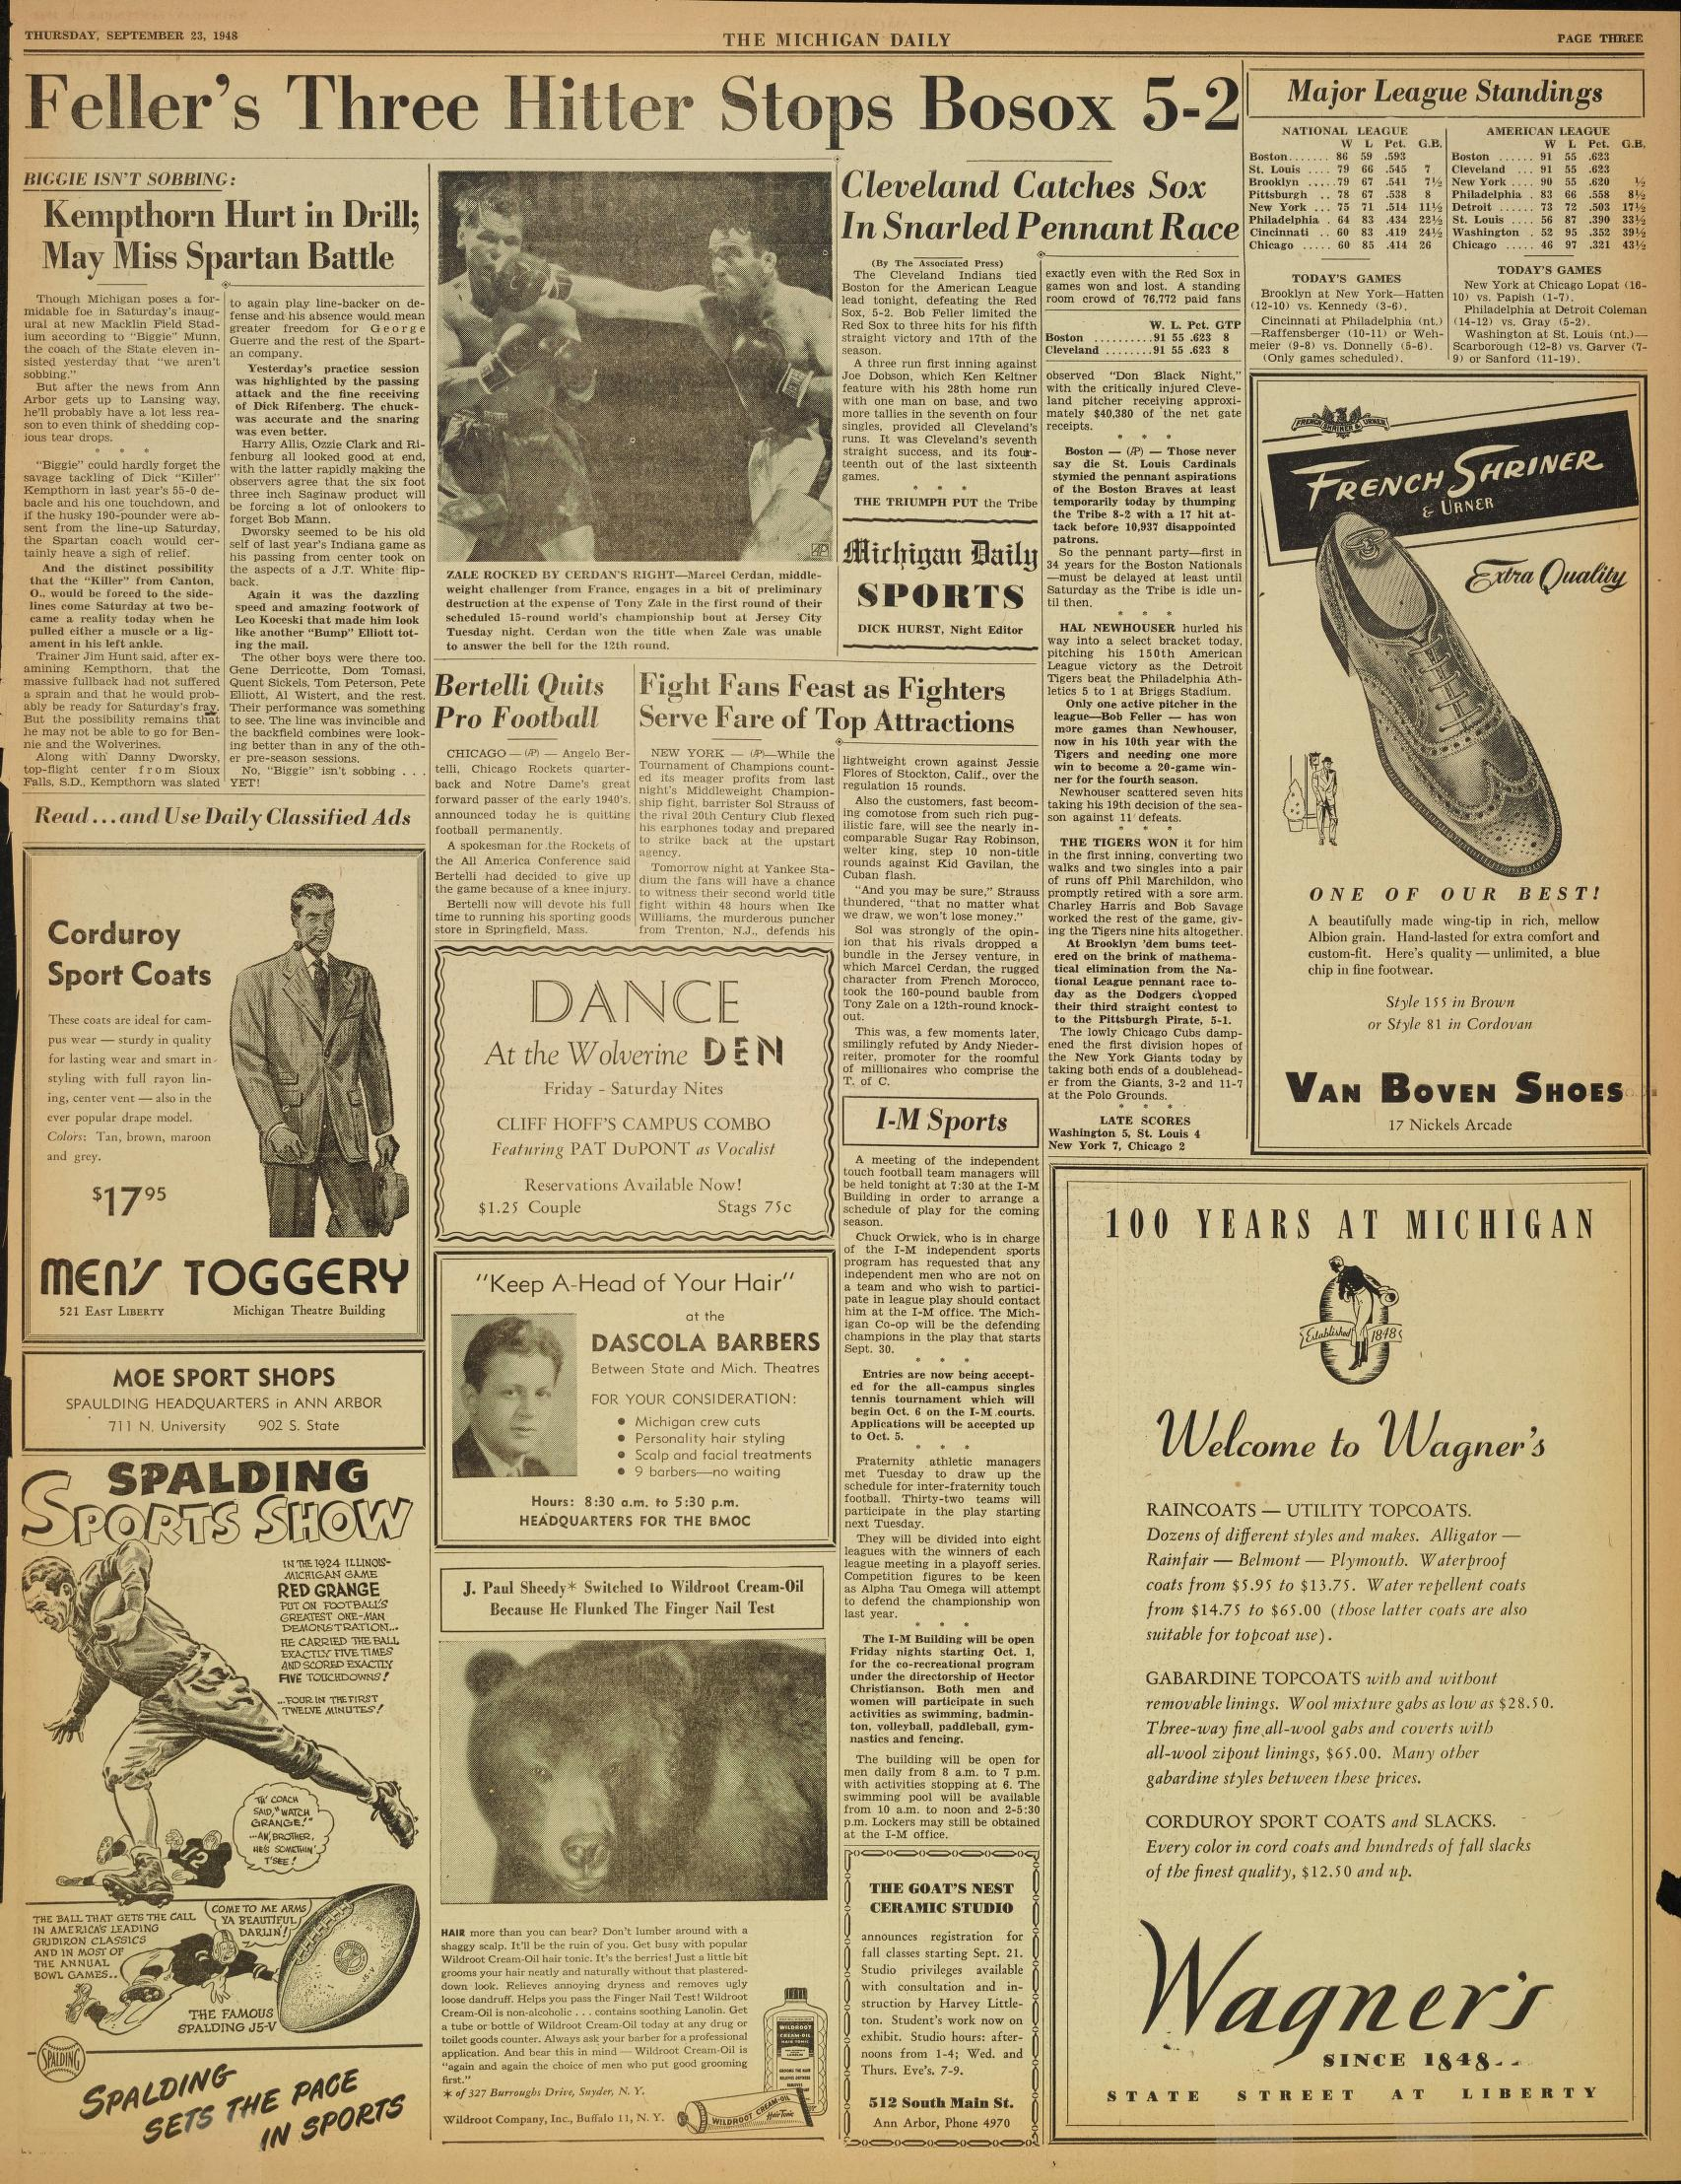 Michigan Daily Digital Archives - September 23, 1948 (vol  59, iss